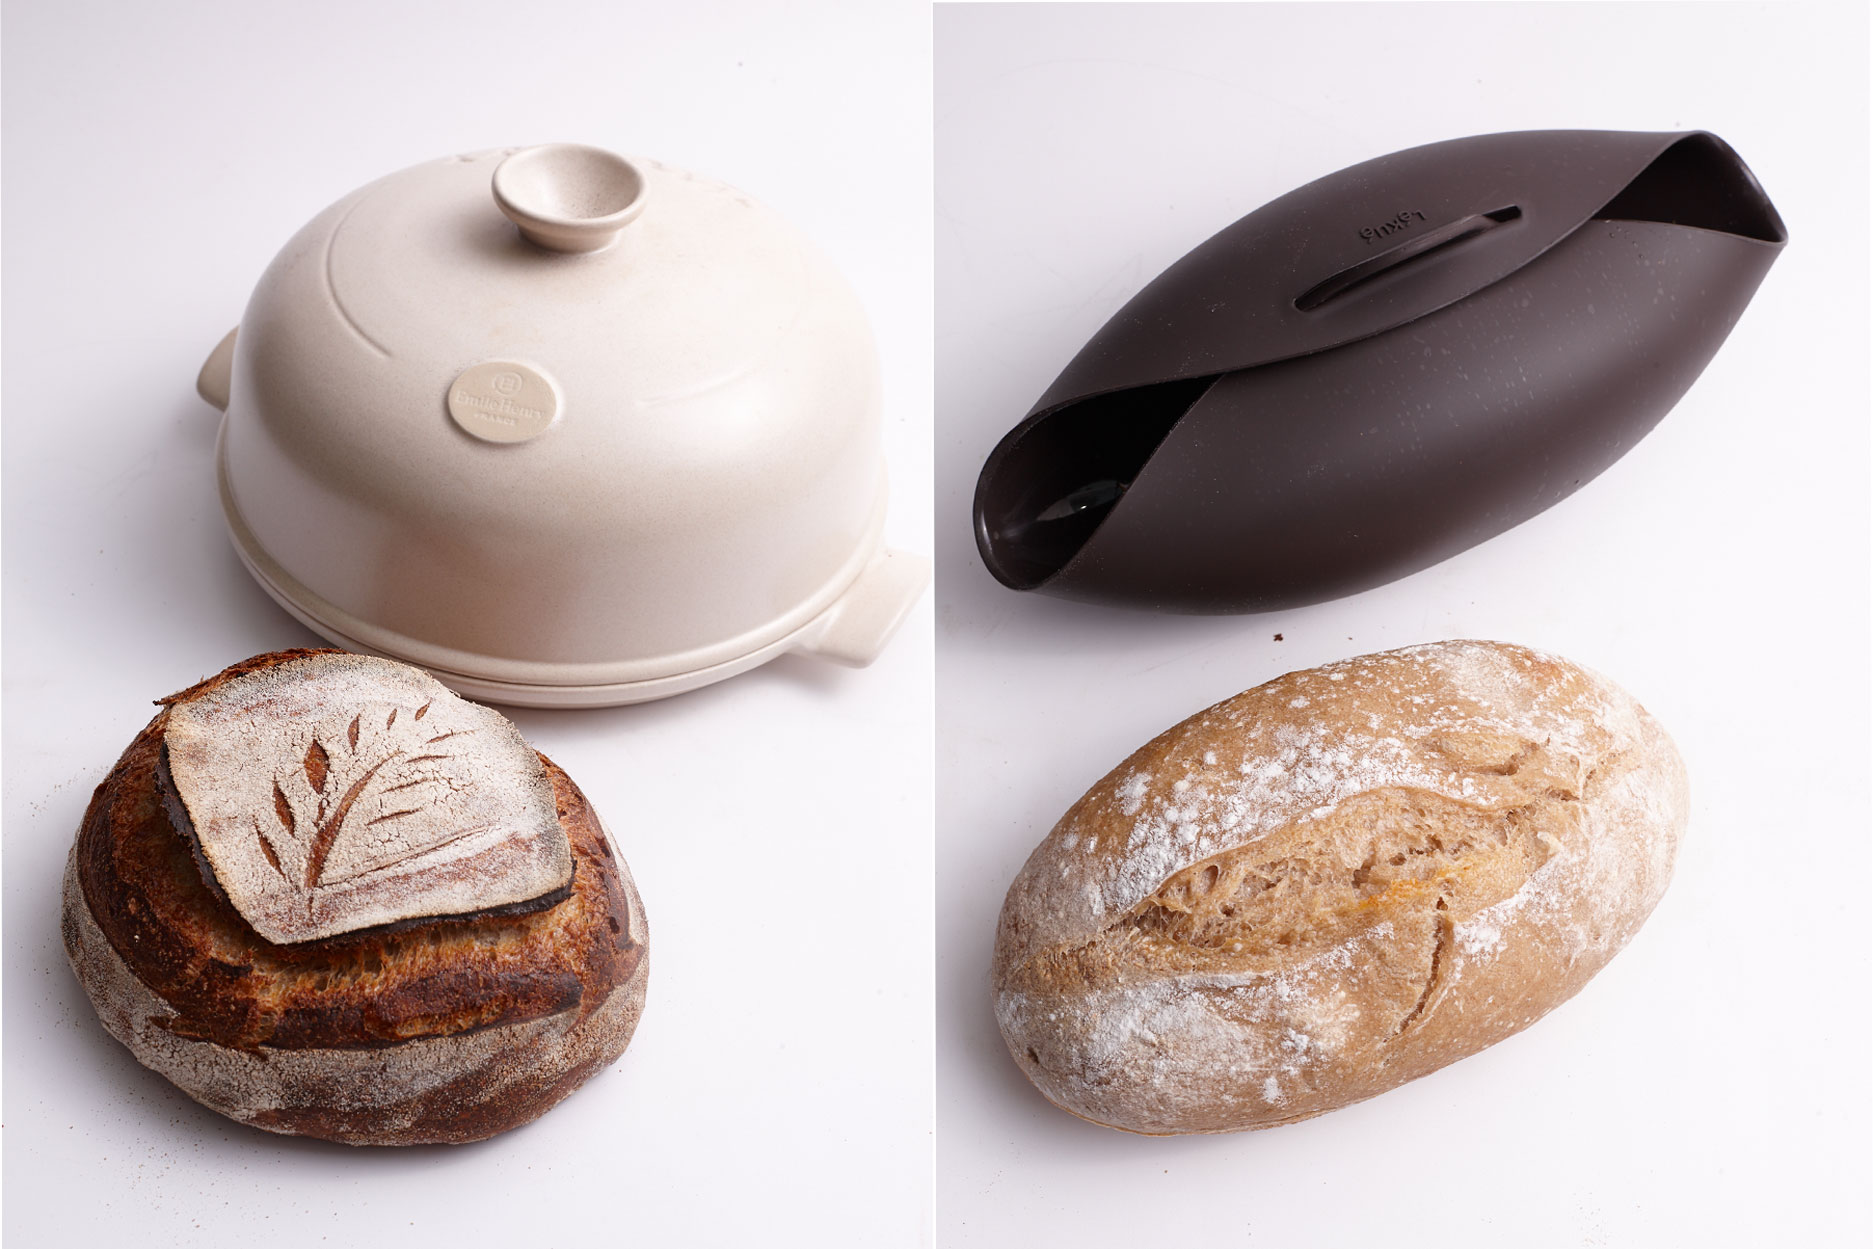 emile henry and silicone bread cloche